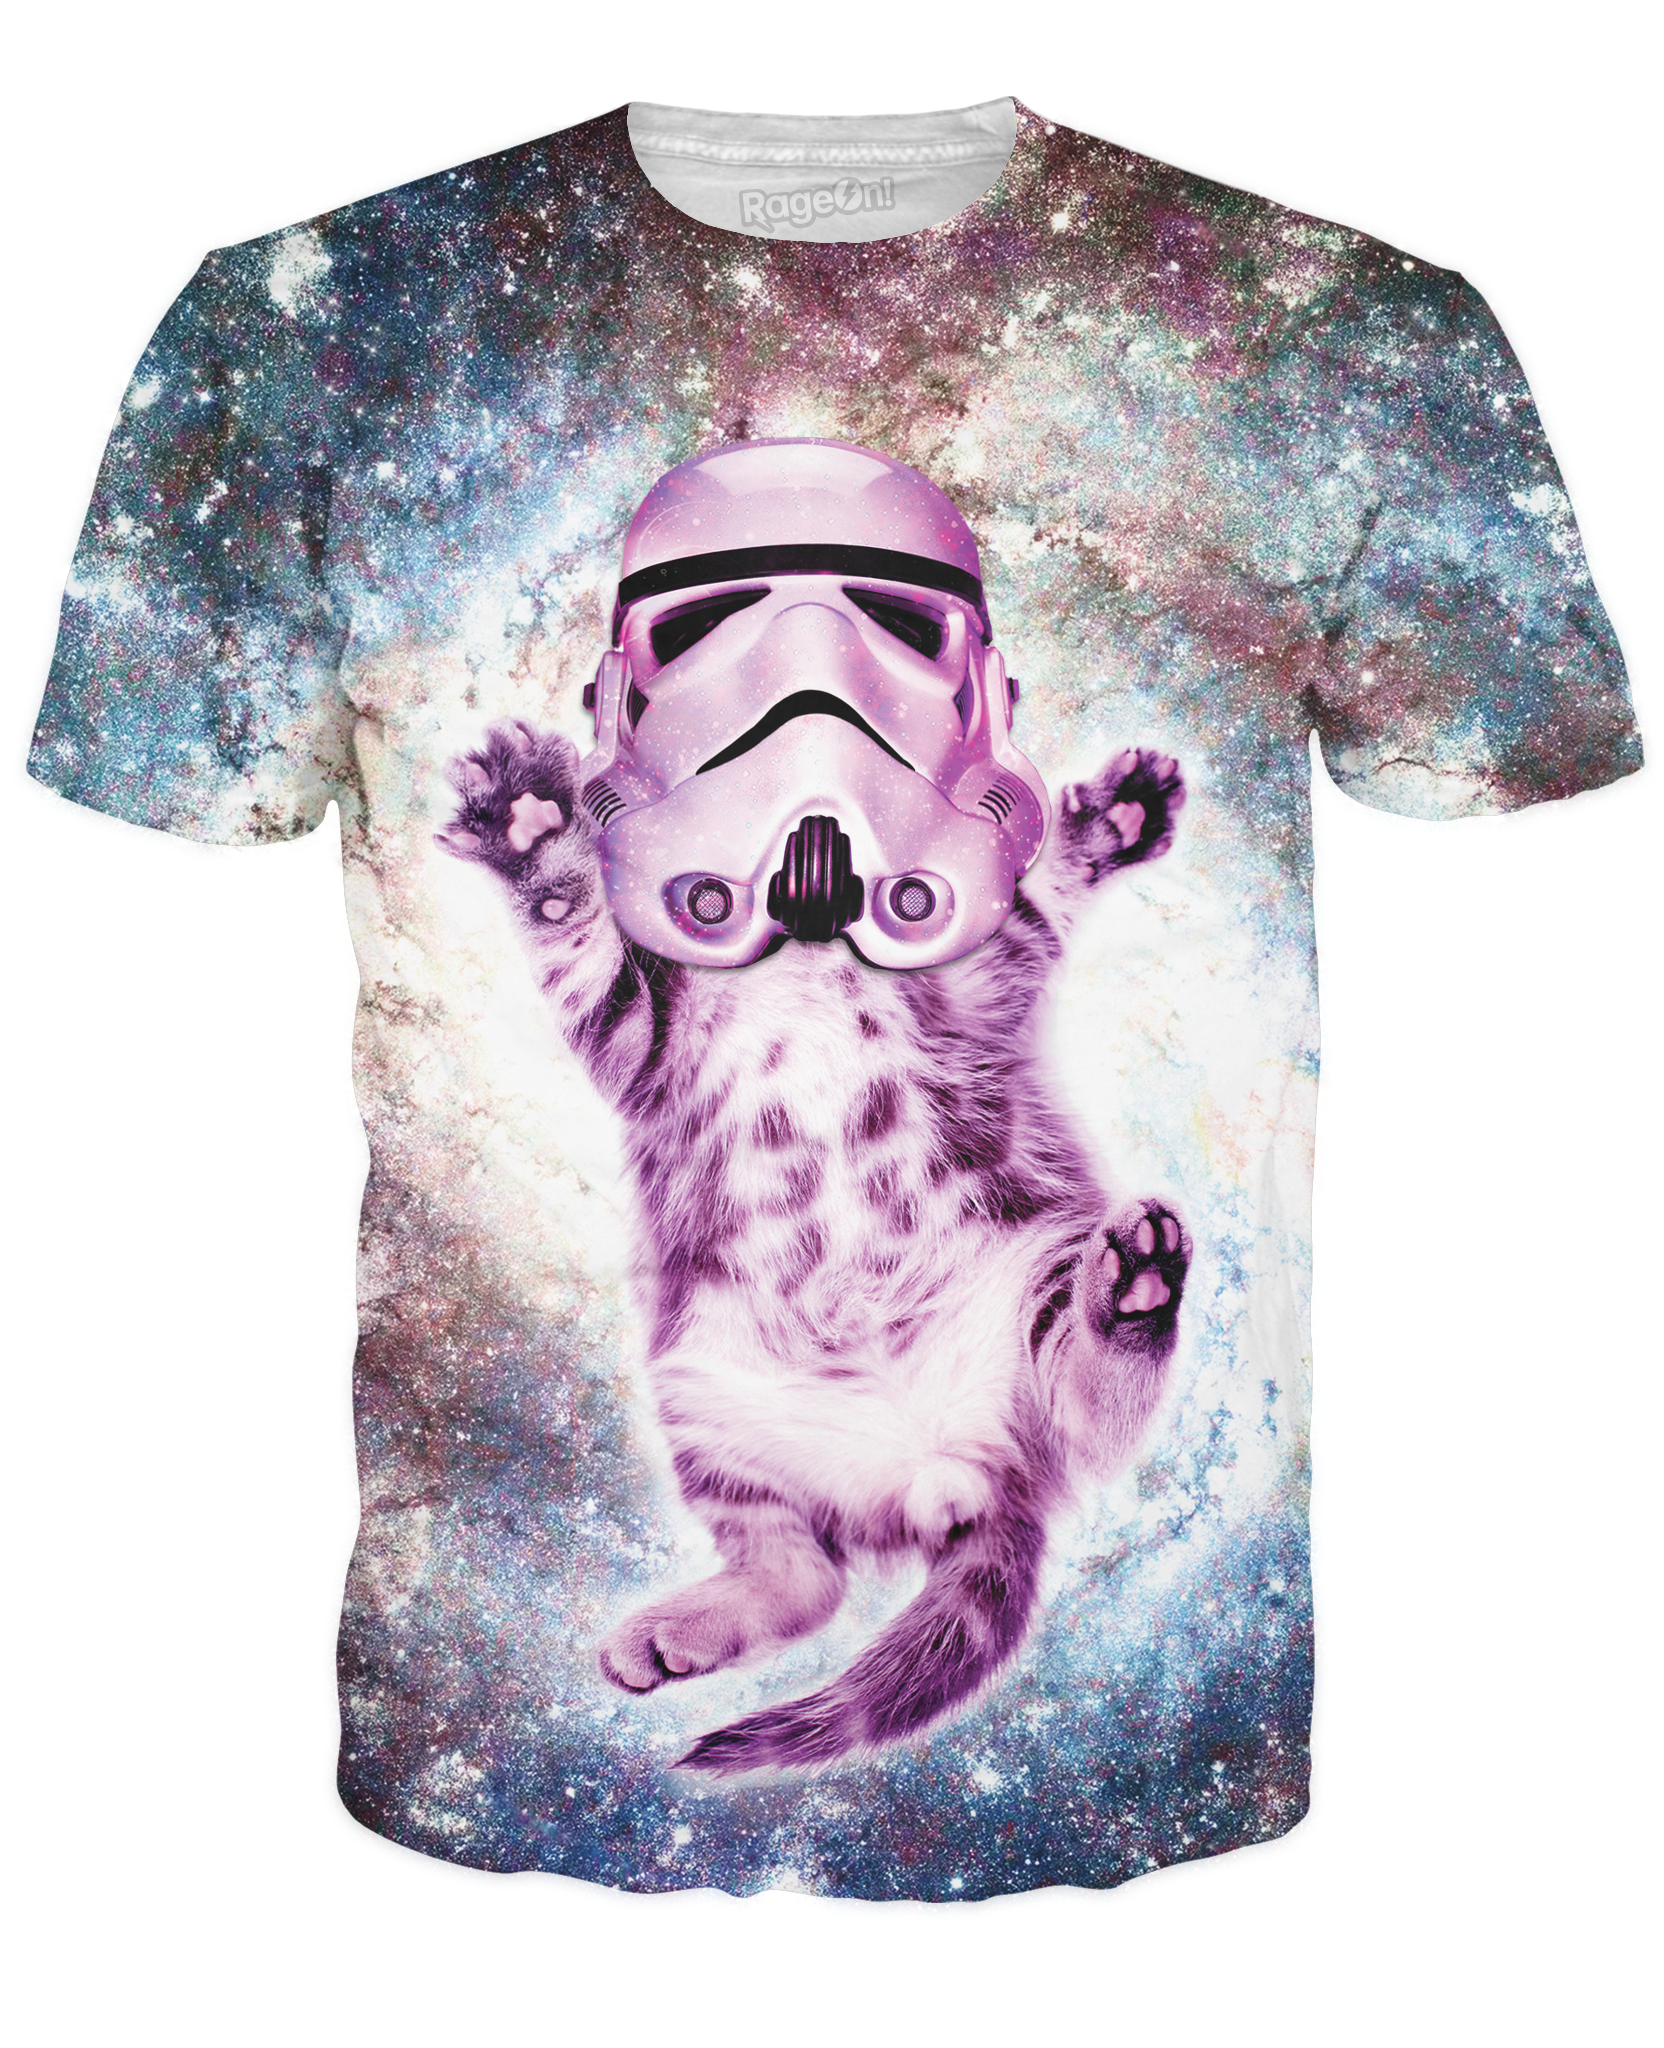 Helmet Cat T-Shirt